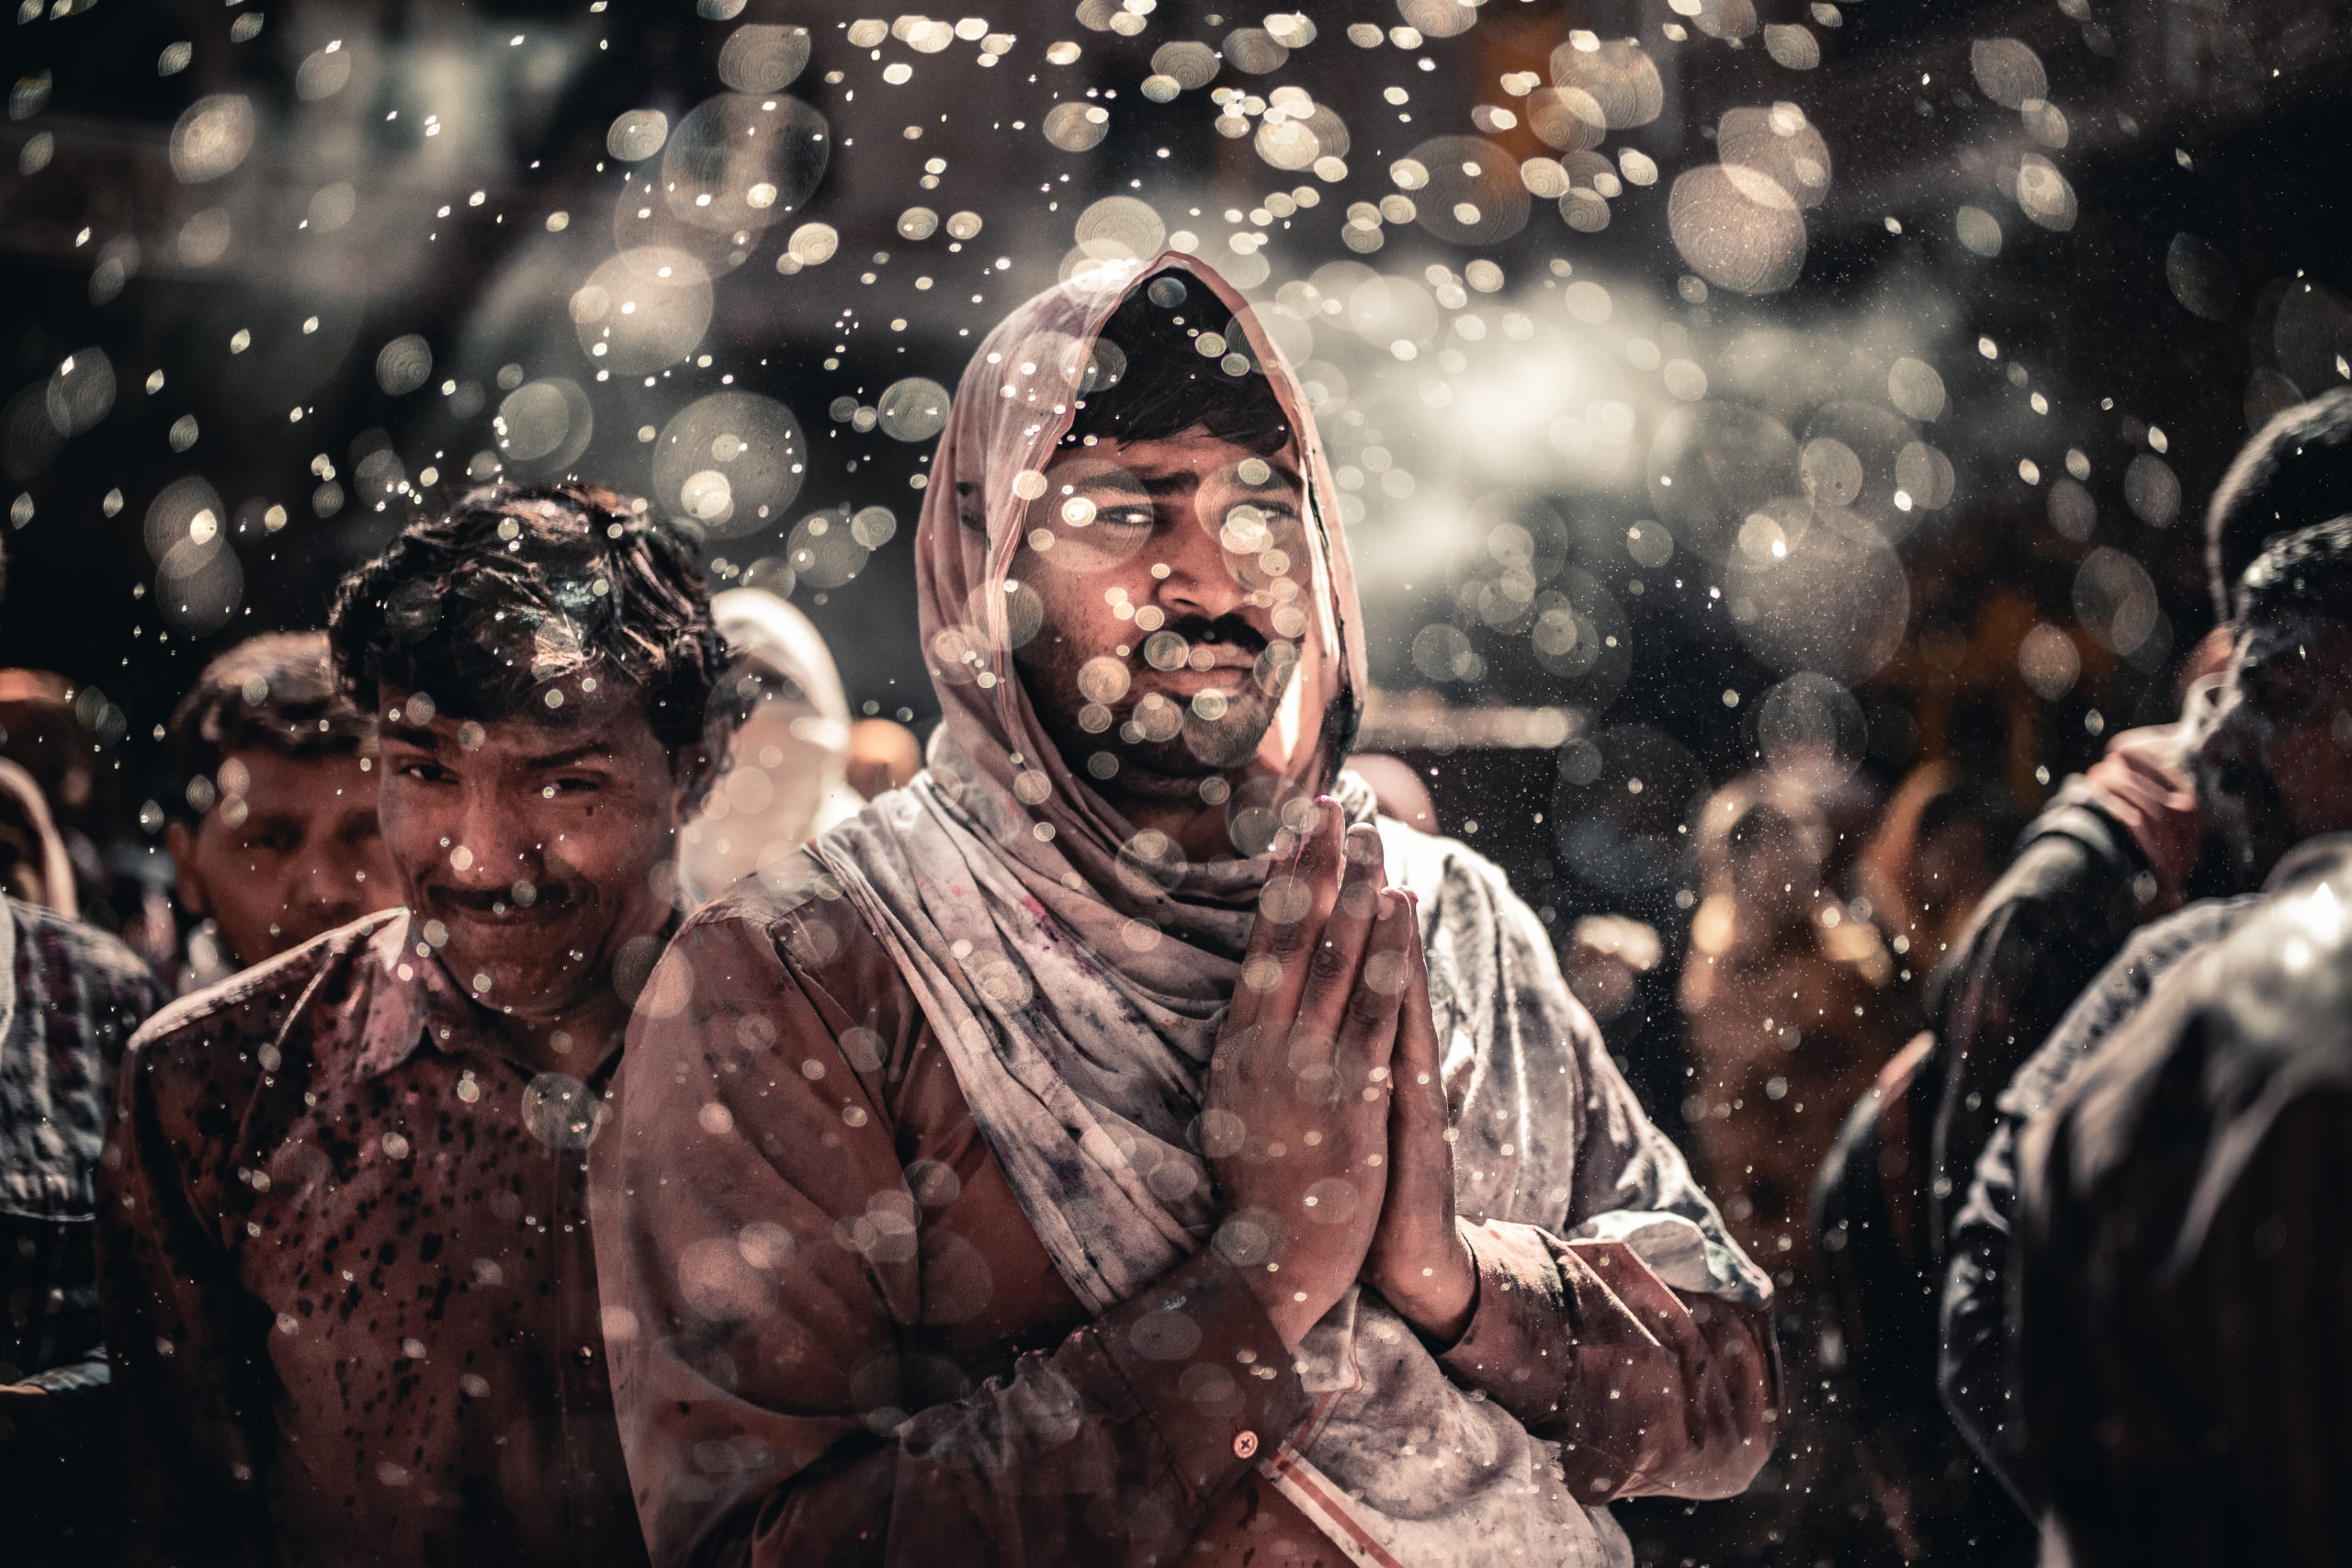 Portrait photography of a man celebrating the Holi Festival of Colors in Vrindivan, India